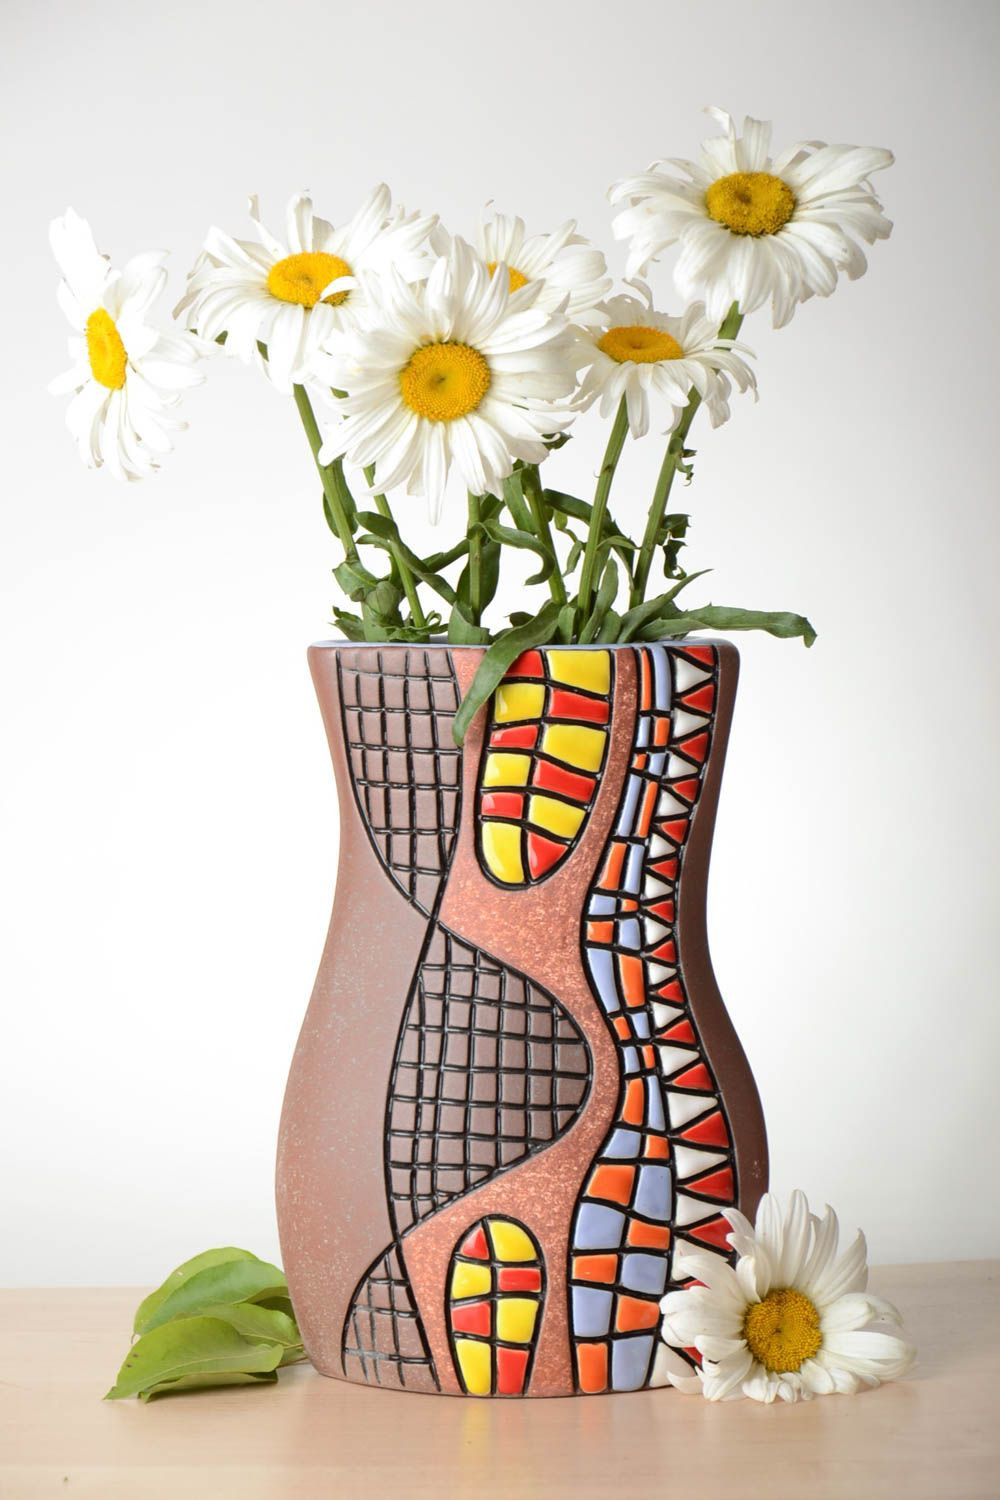 25 Unique Ceramic Wall Vases for Flowers 2021 free download ceramic wall vases for flowers of flower vase designs ideas flowers healthy intended for vases stylish handmade ceramic vase flower vase design clay craft room decor ideas madeheart